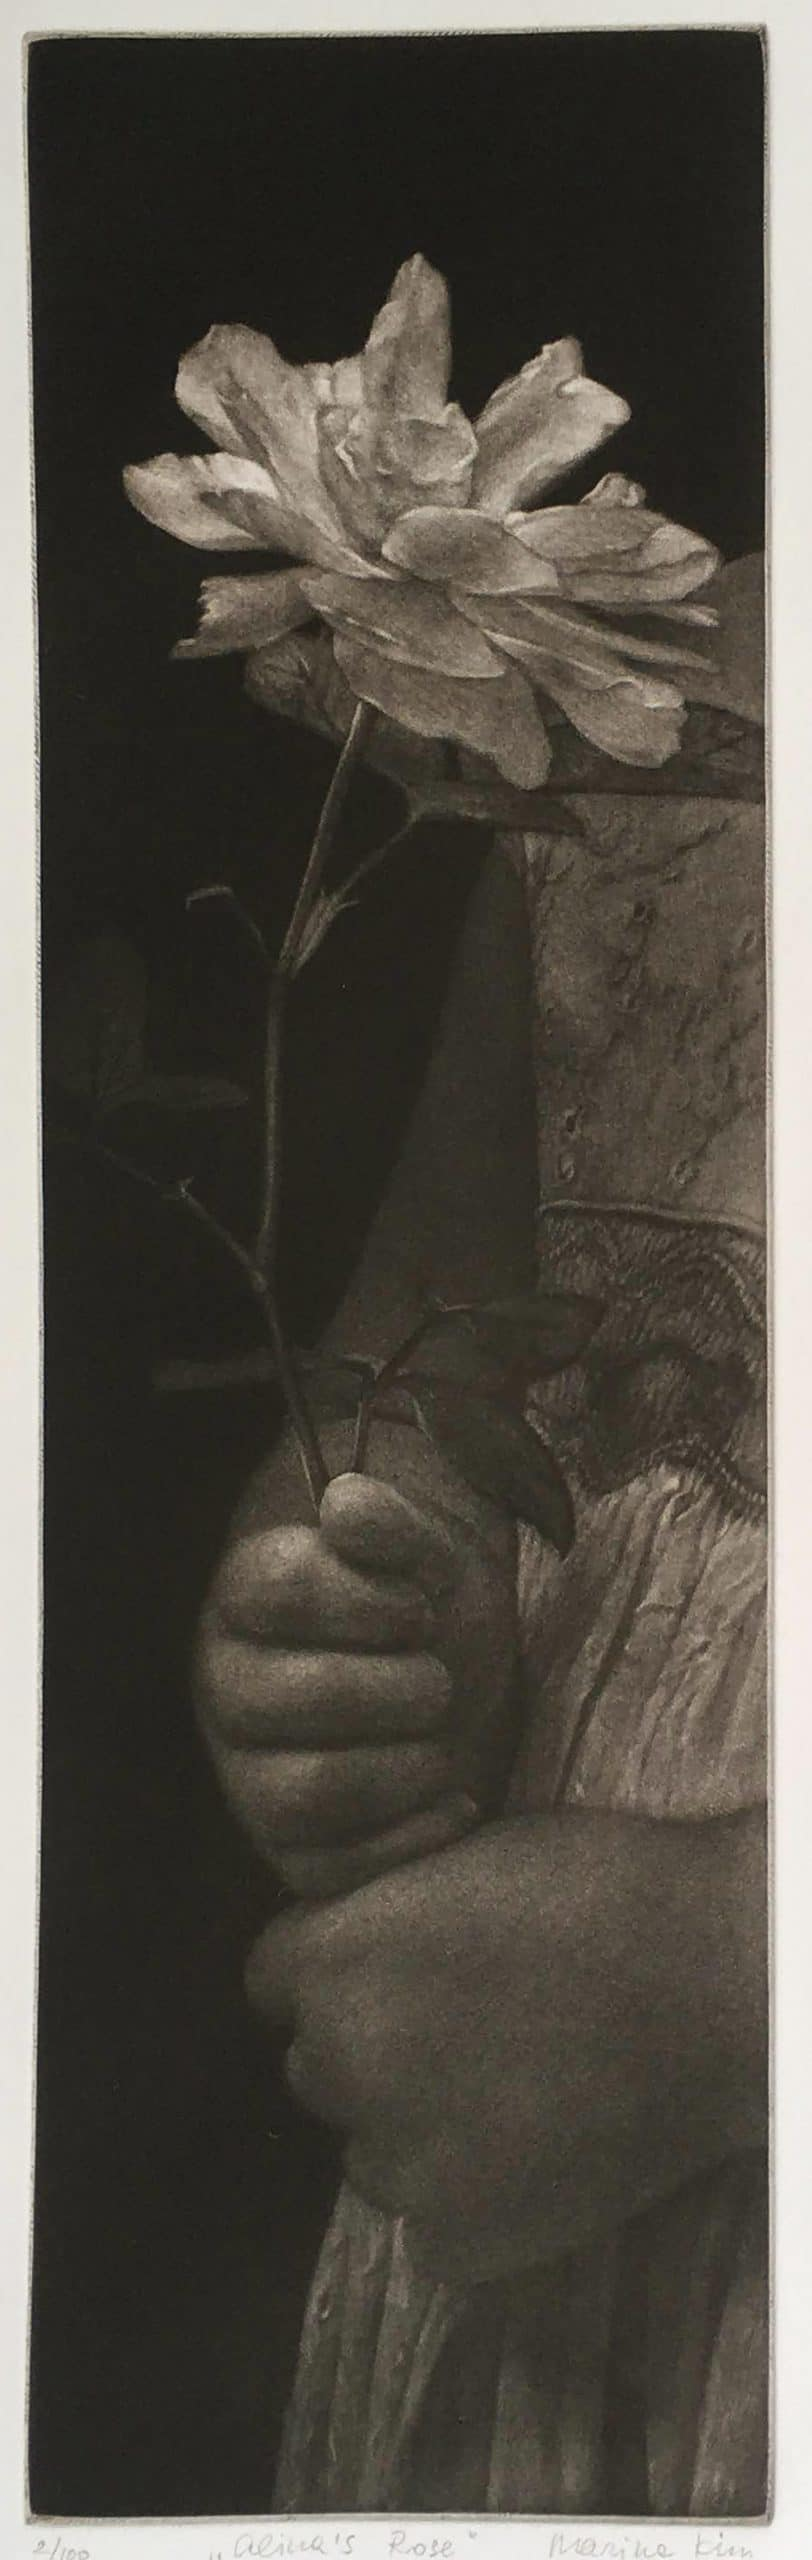 """""""Alina's Rose"""" - black and white picture of a child's hands holding a rose. Original print mezzotint by painter-printmaker Marina Kim"""